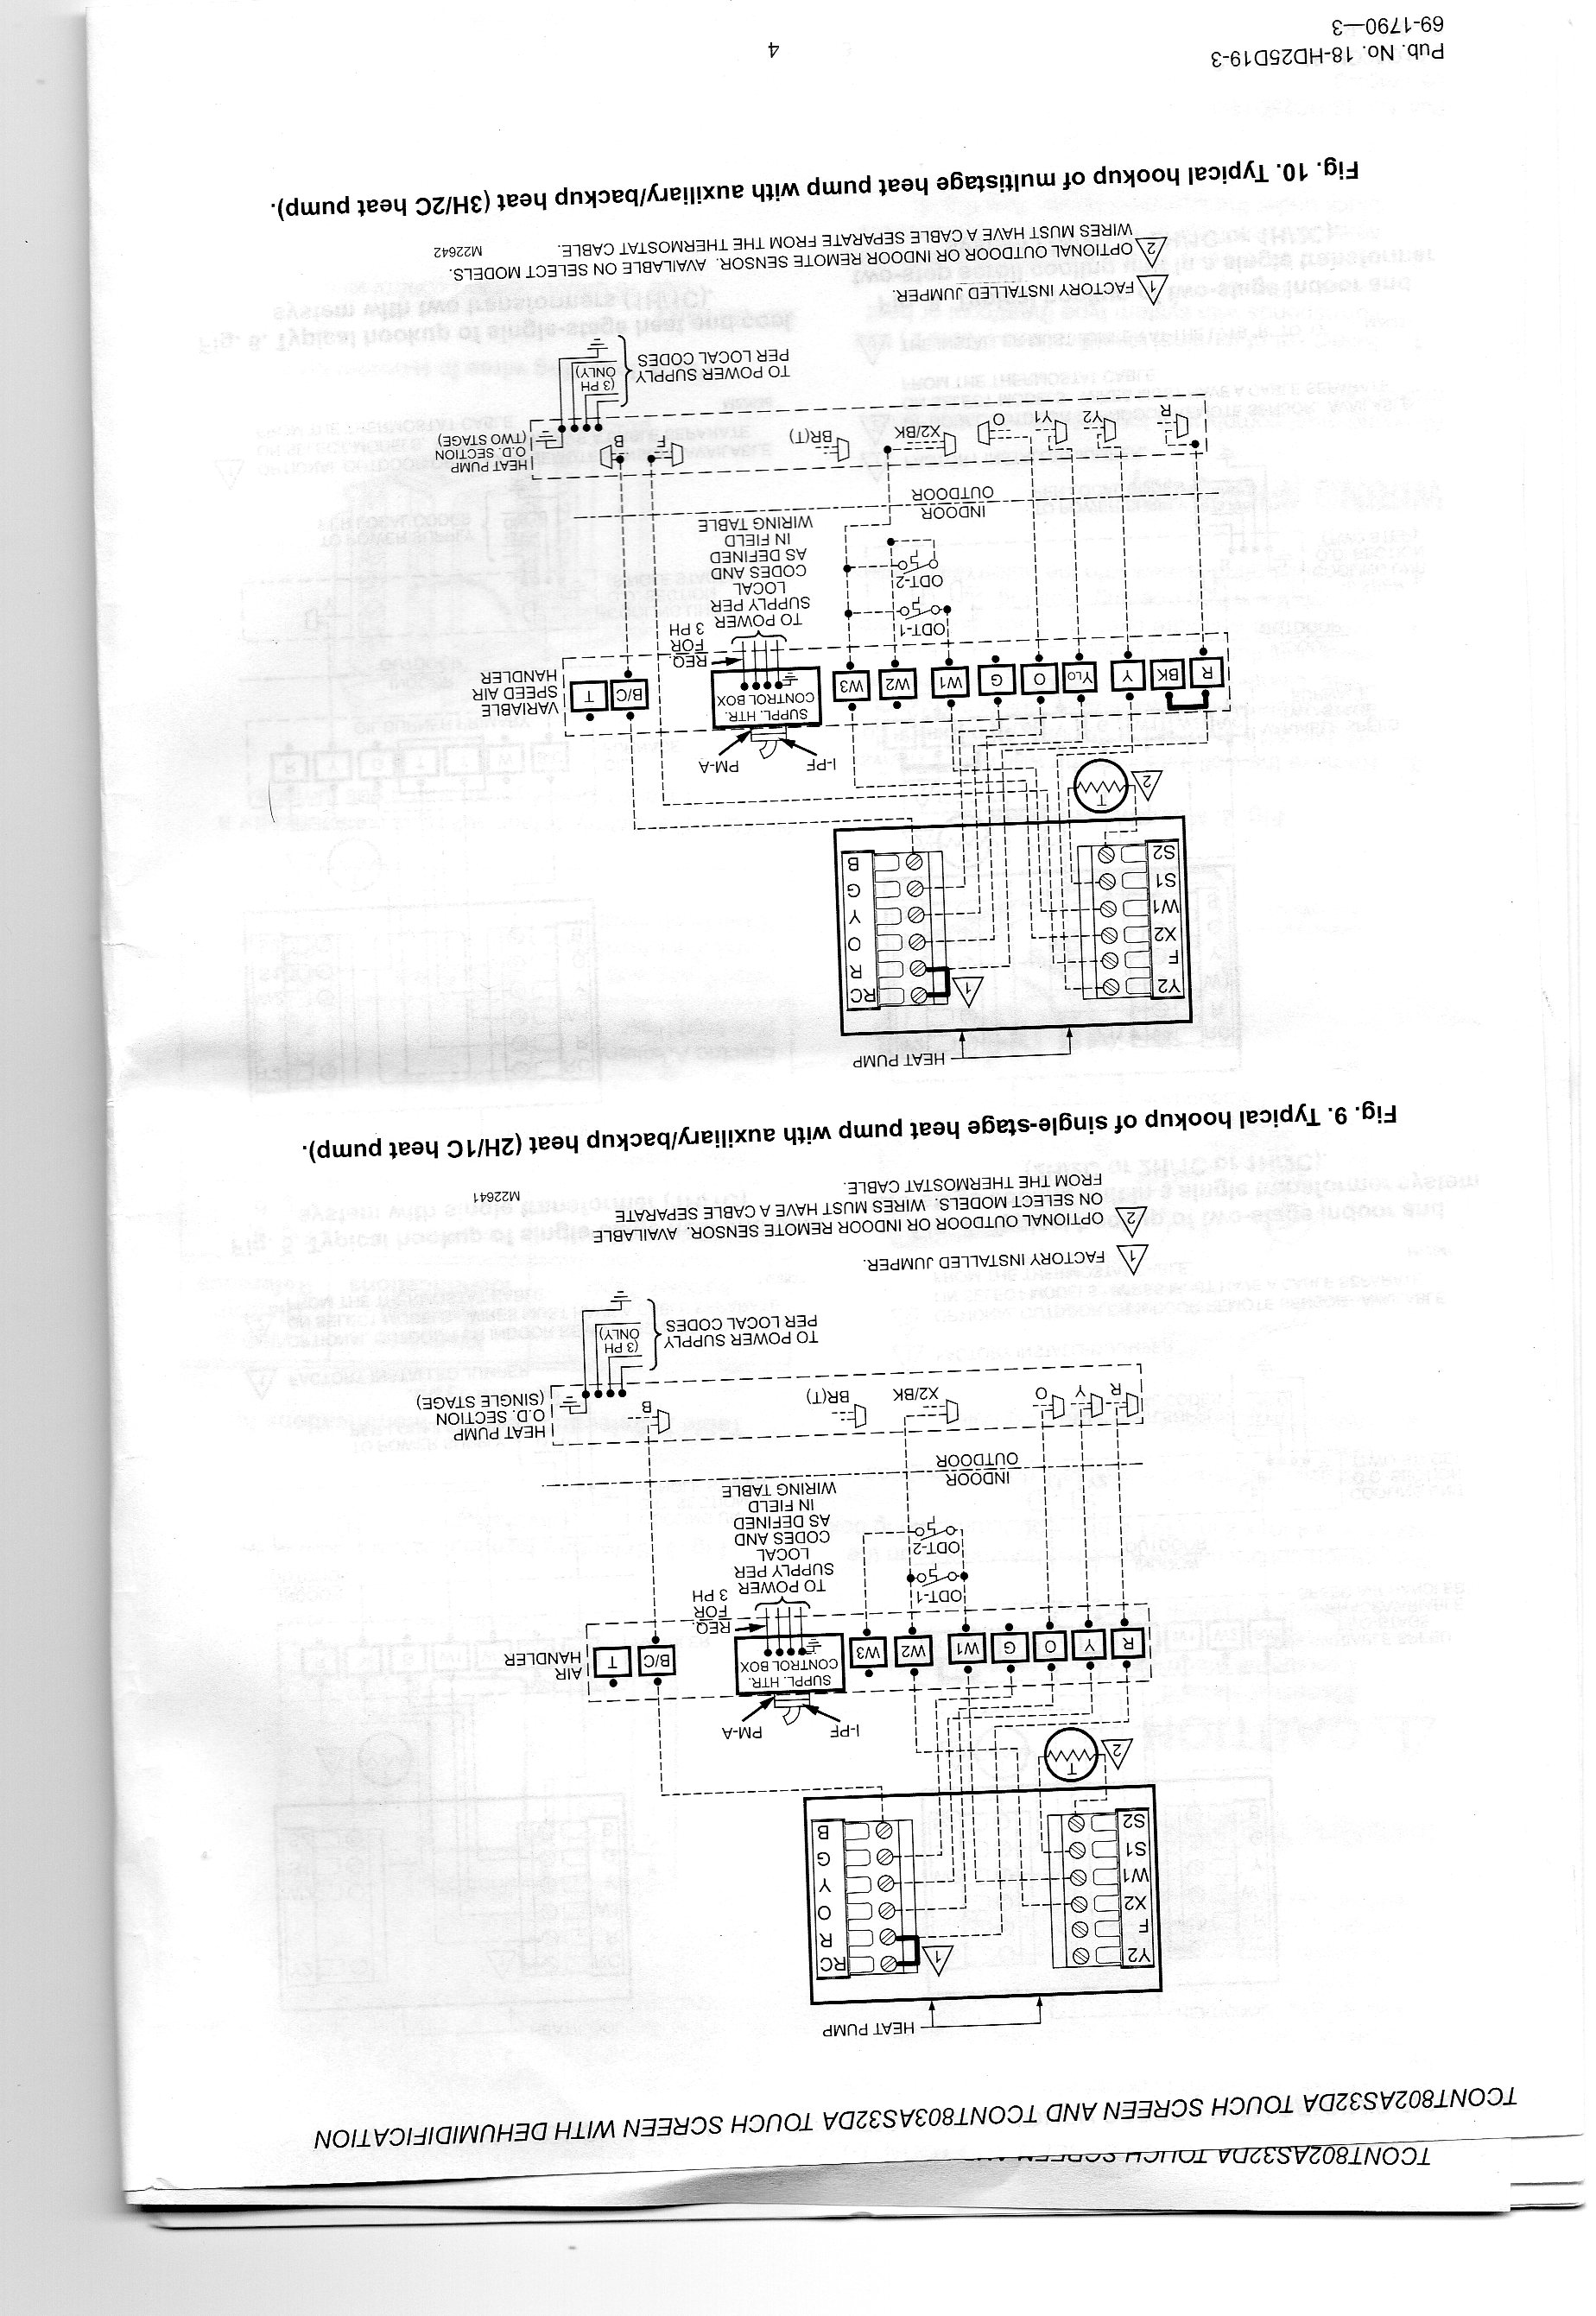 Trane thermo wiring diagram adc t2000 heat pump issue page 2 suretydiy security and automation trane heat pump wiring diagram at reclaimingppi.co